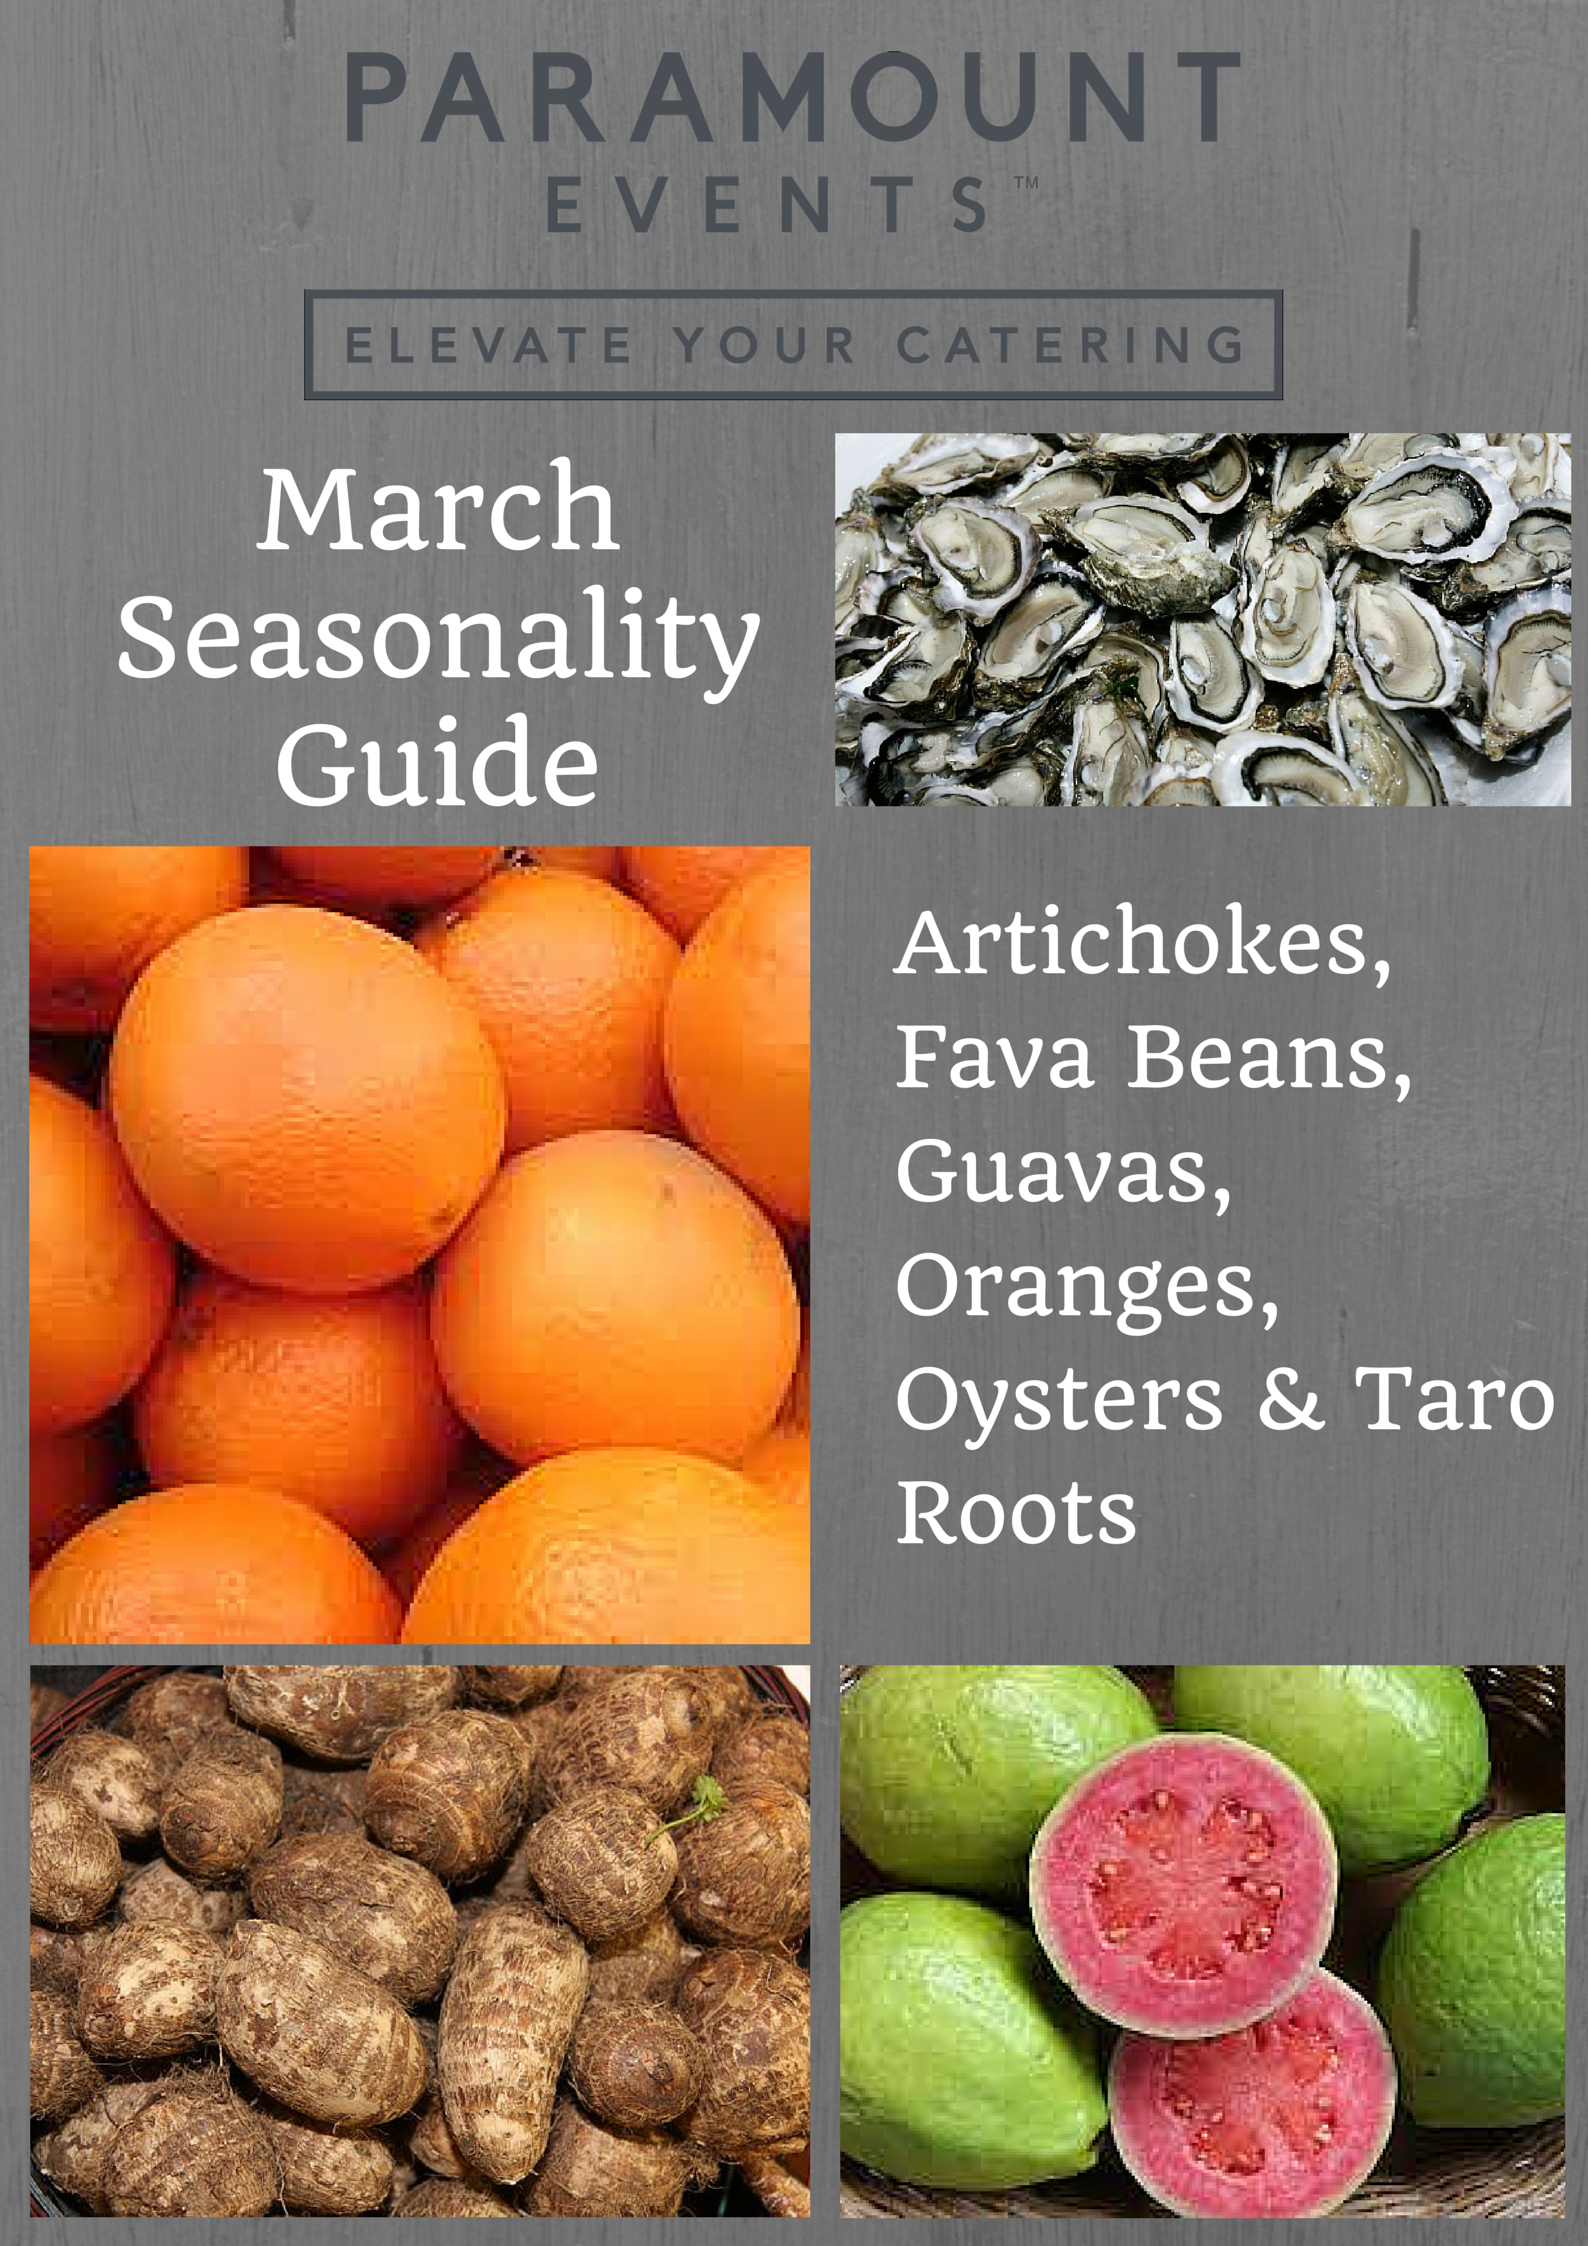 March Seasonality Guide